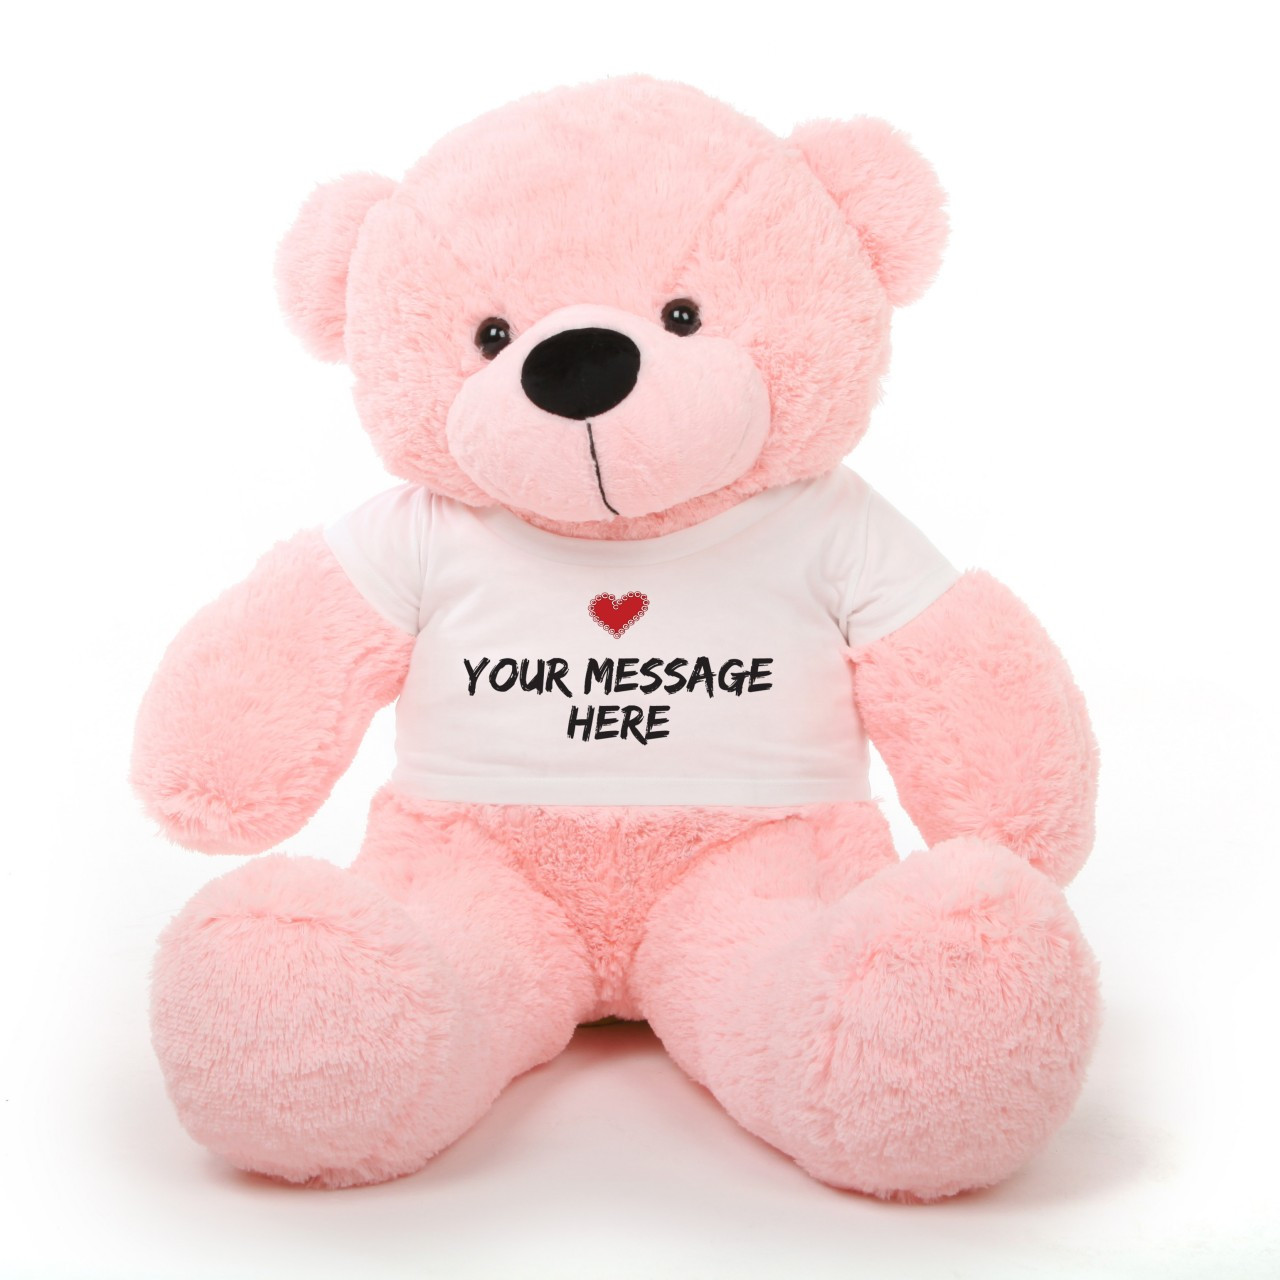 At 38 inches, She's the most perfect pink personalized teddy bear in the world!